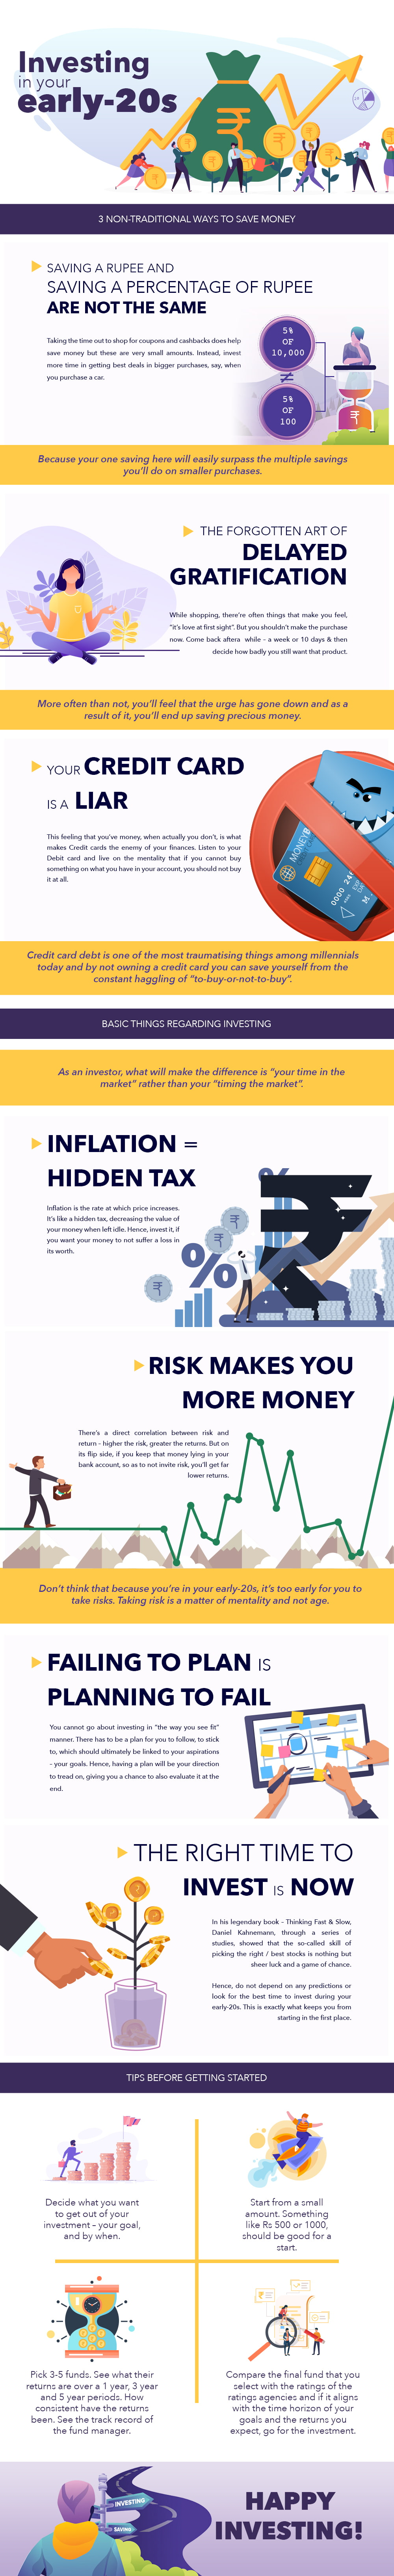 The infographic talks about why investing in your 20's is a great idea.